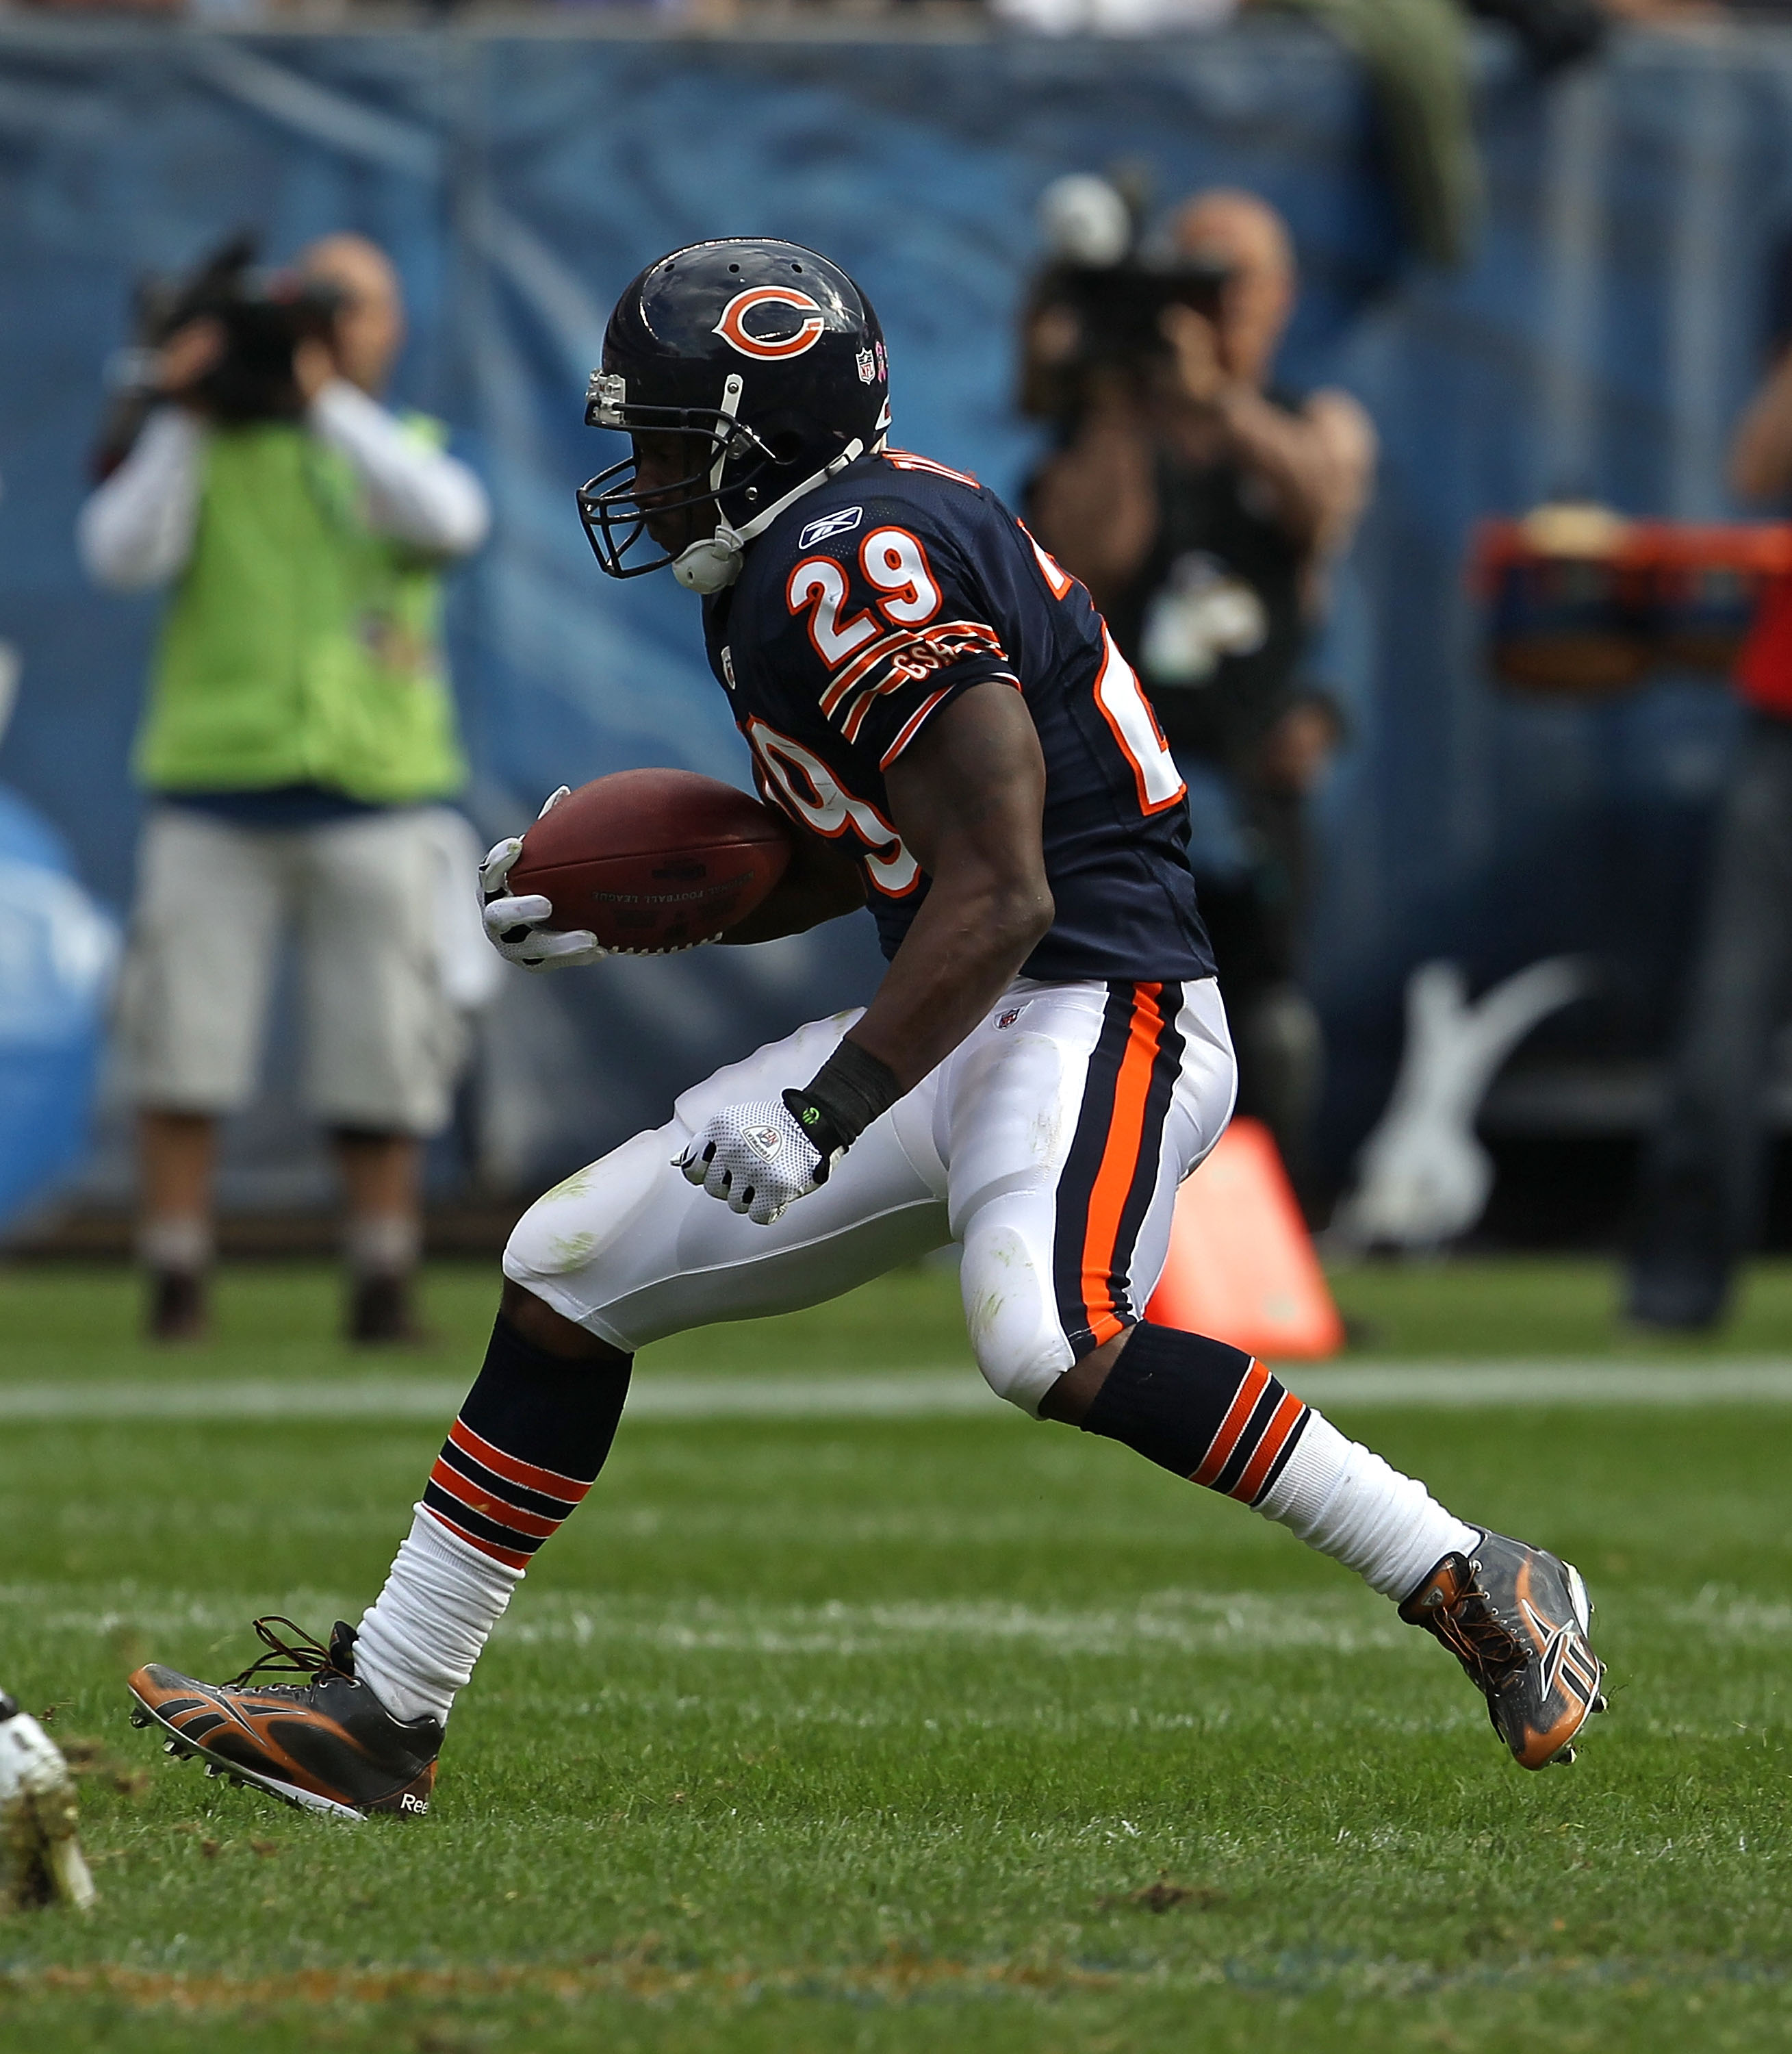 CHICAGO - OCTOBER 24: Chester Taylor #29 of the Chicago Bears runs against the Washington Redskins at Soldier Field on October 24, 2010 in Chicago, Illinois. The Redskins defeated the Bears 17-14. (Photo by Jonathan Daniel/Getty Images)